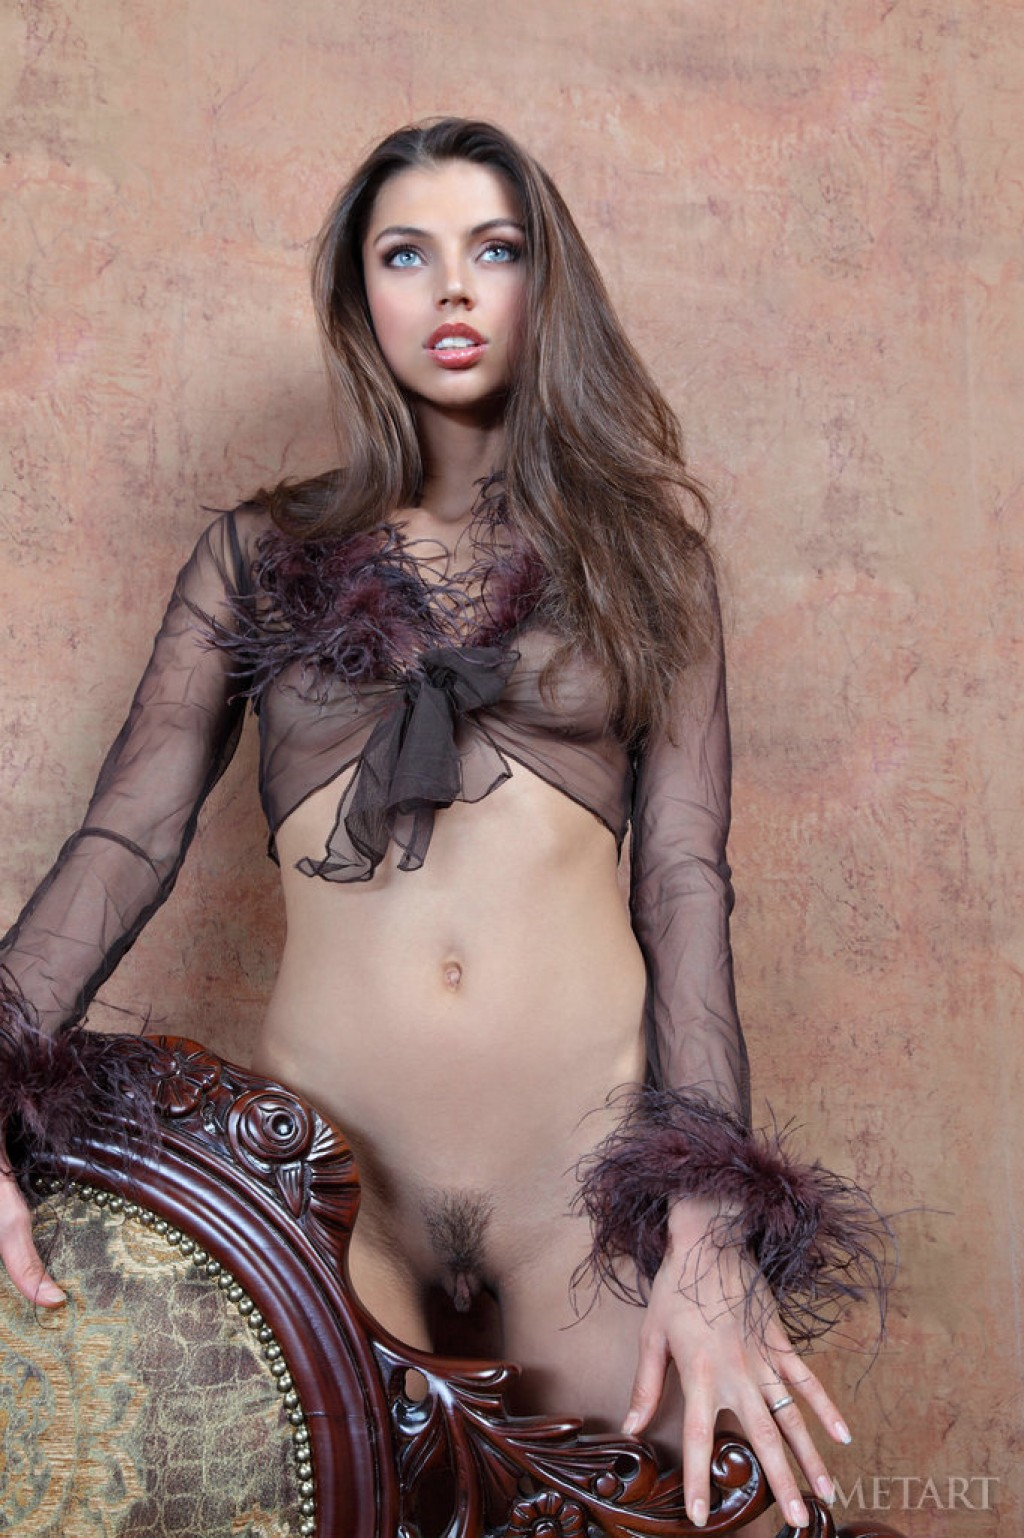 Gorgeous-Brunette-Babe-Valentina-Kolesnikova-with-Beautiful-Pussy-from-Met-Art-14.jpg